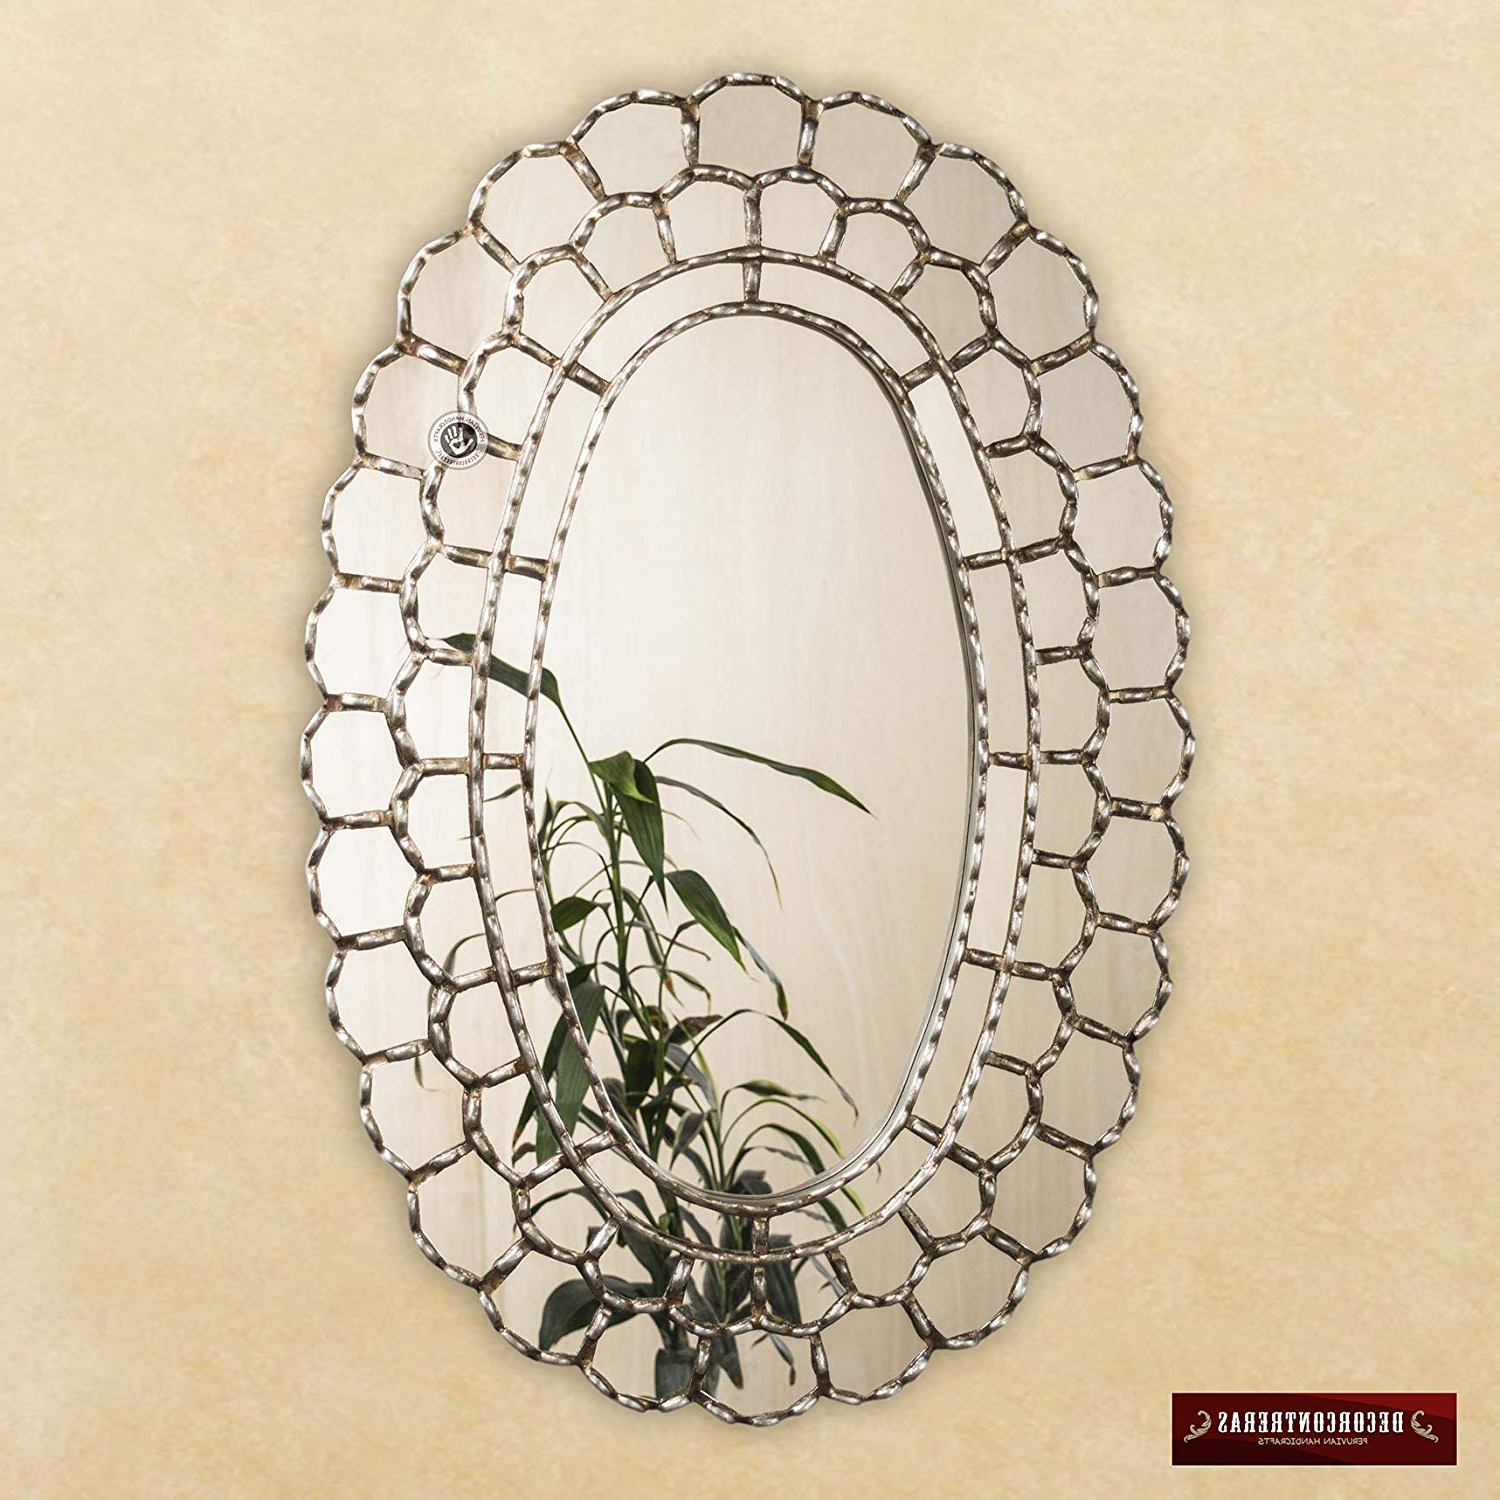 Amazon: Silver Large Oval Mirror – Handmade Decorative In Trendy Ornate Wall Mirrors (View 20 of 20)